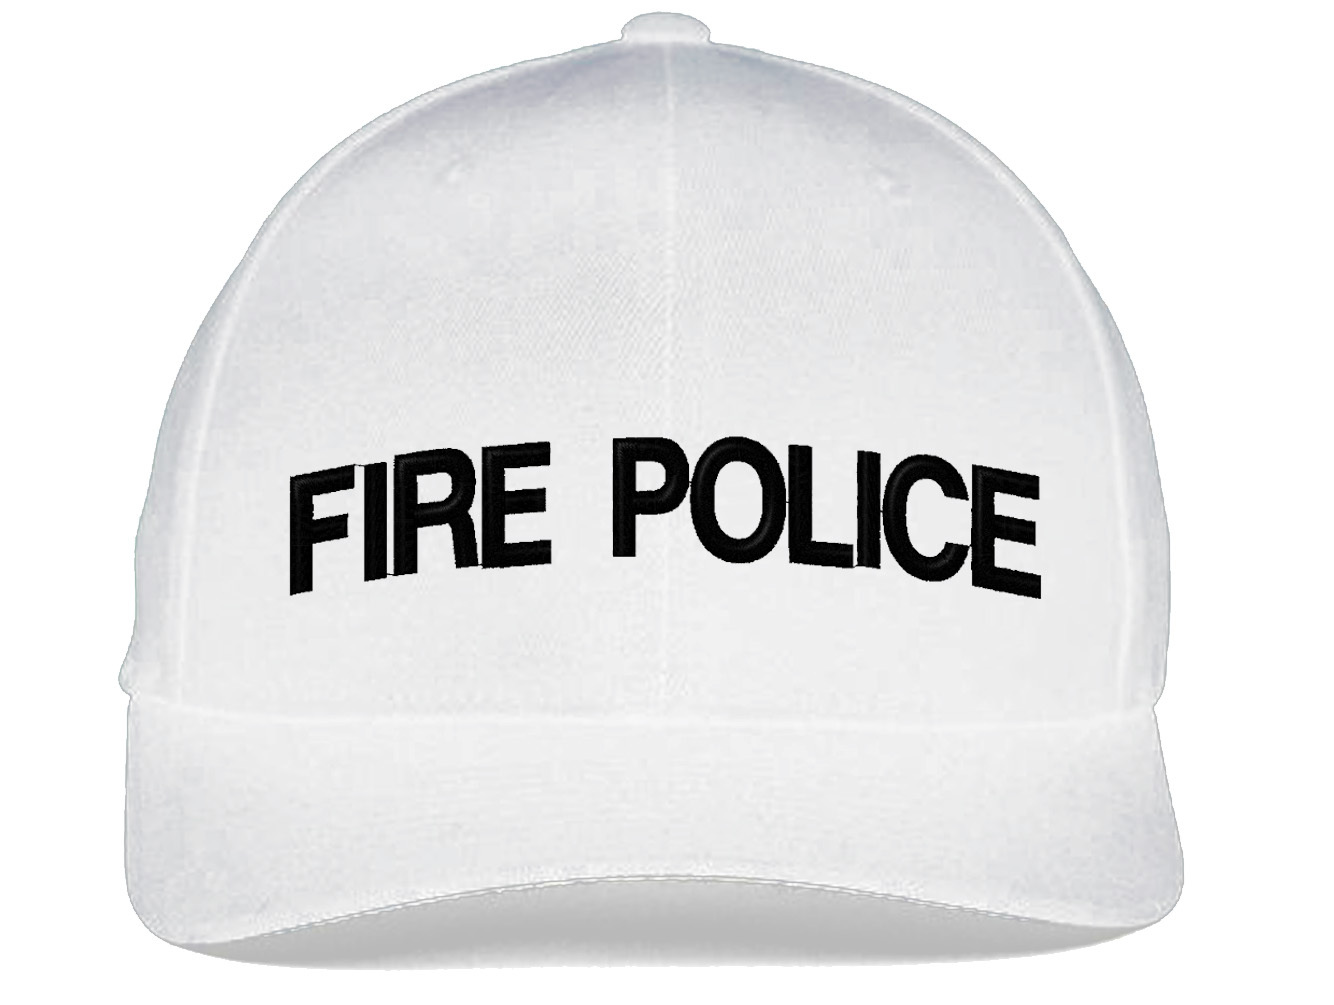 FIRE POLICE Flexfit, Fine Finished Embroidery Hats